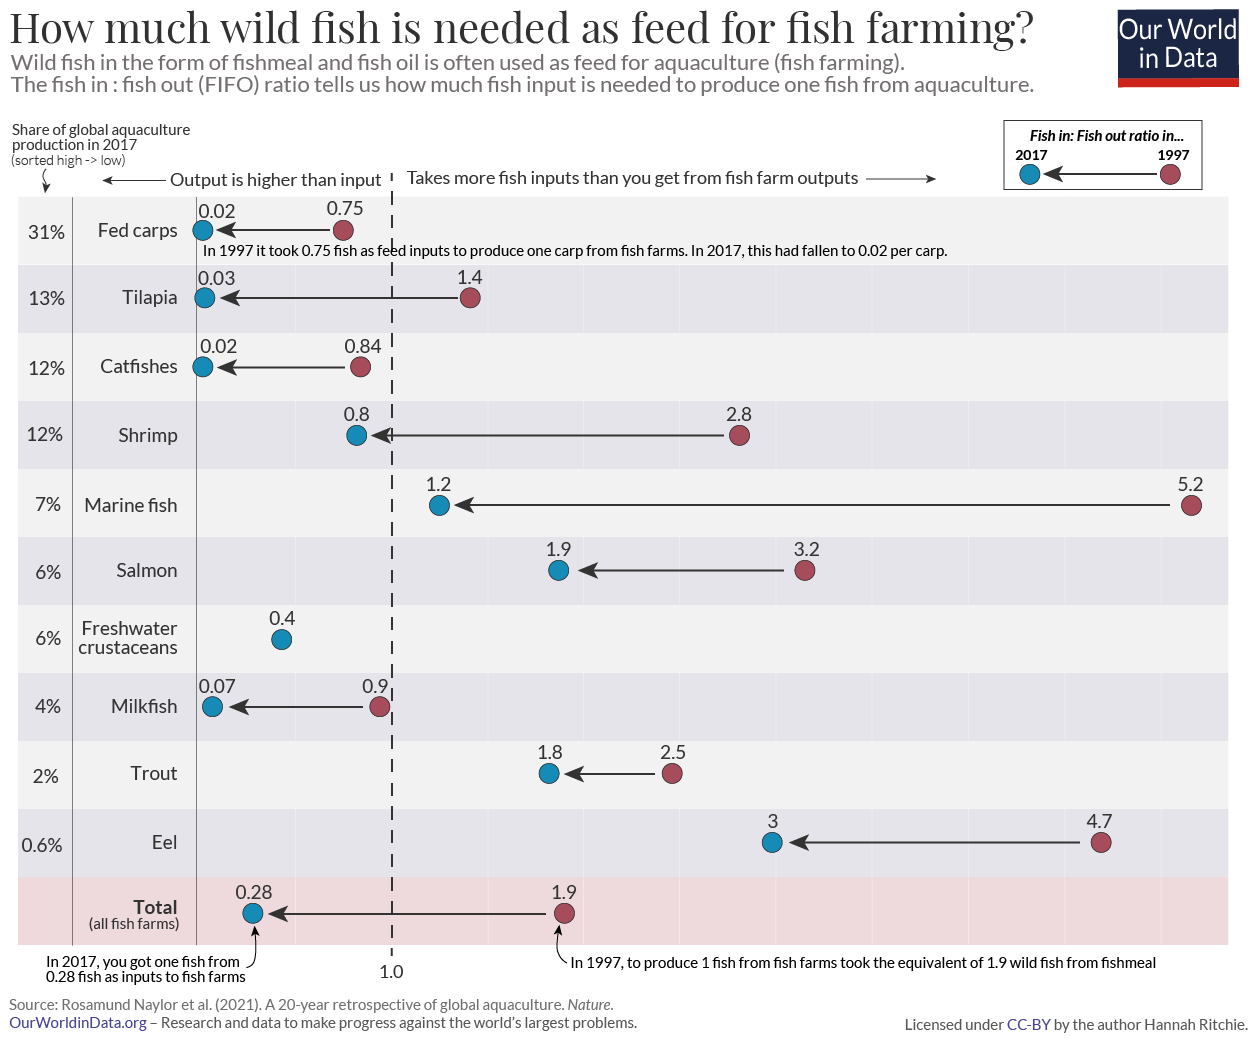 Fish in fish out ratios